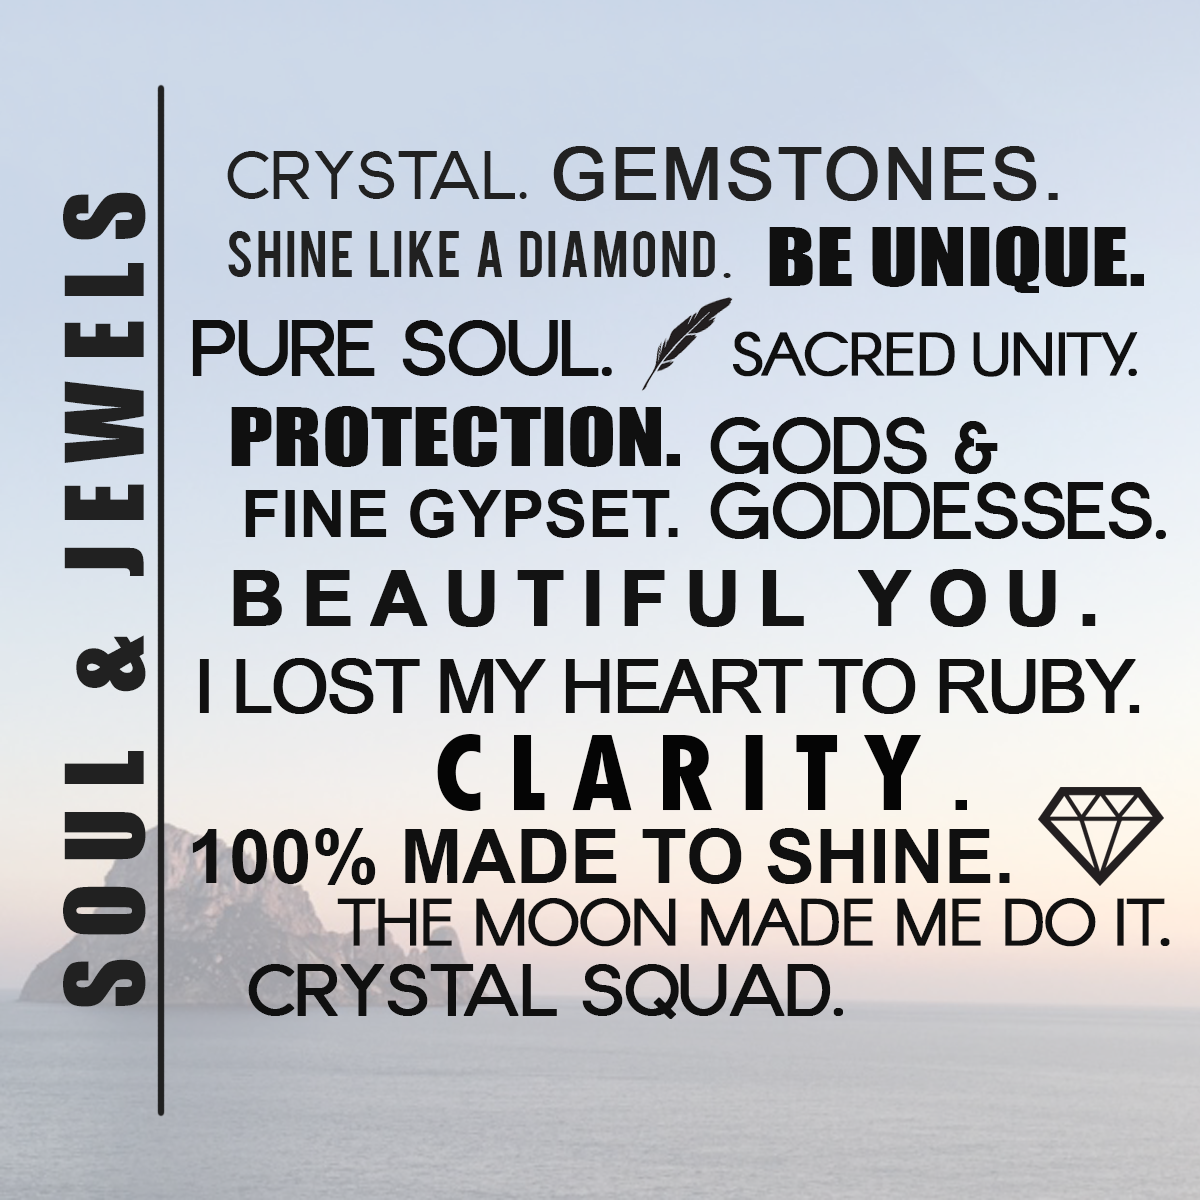 SOUlL &JEWELS MANIFESTO Hand selected jewelry with meaning and intention Quality gemstones and fine art work  100 % made to shine